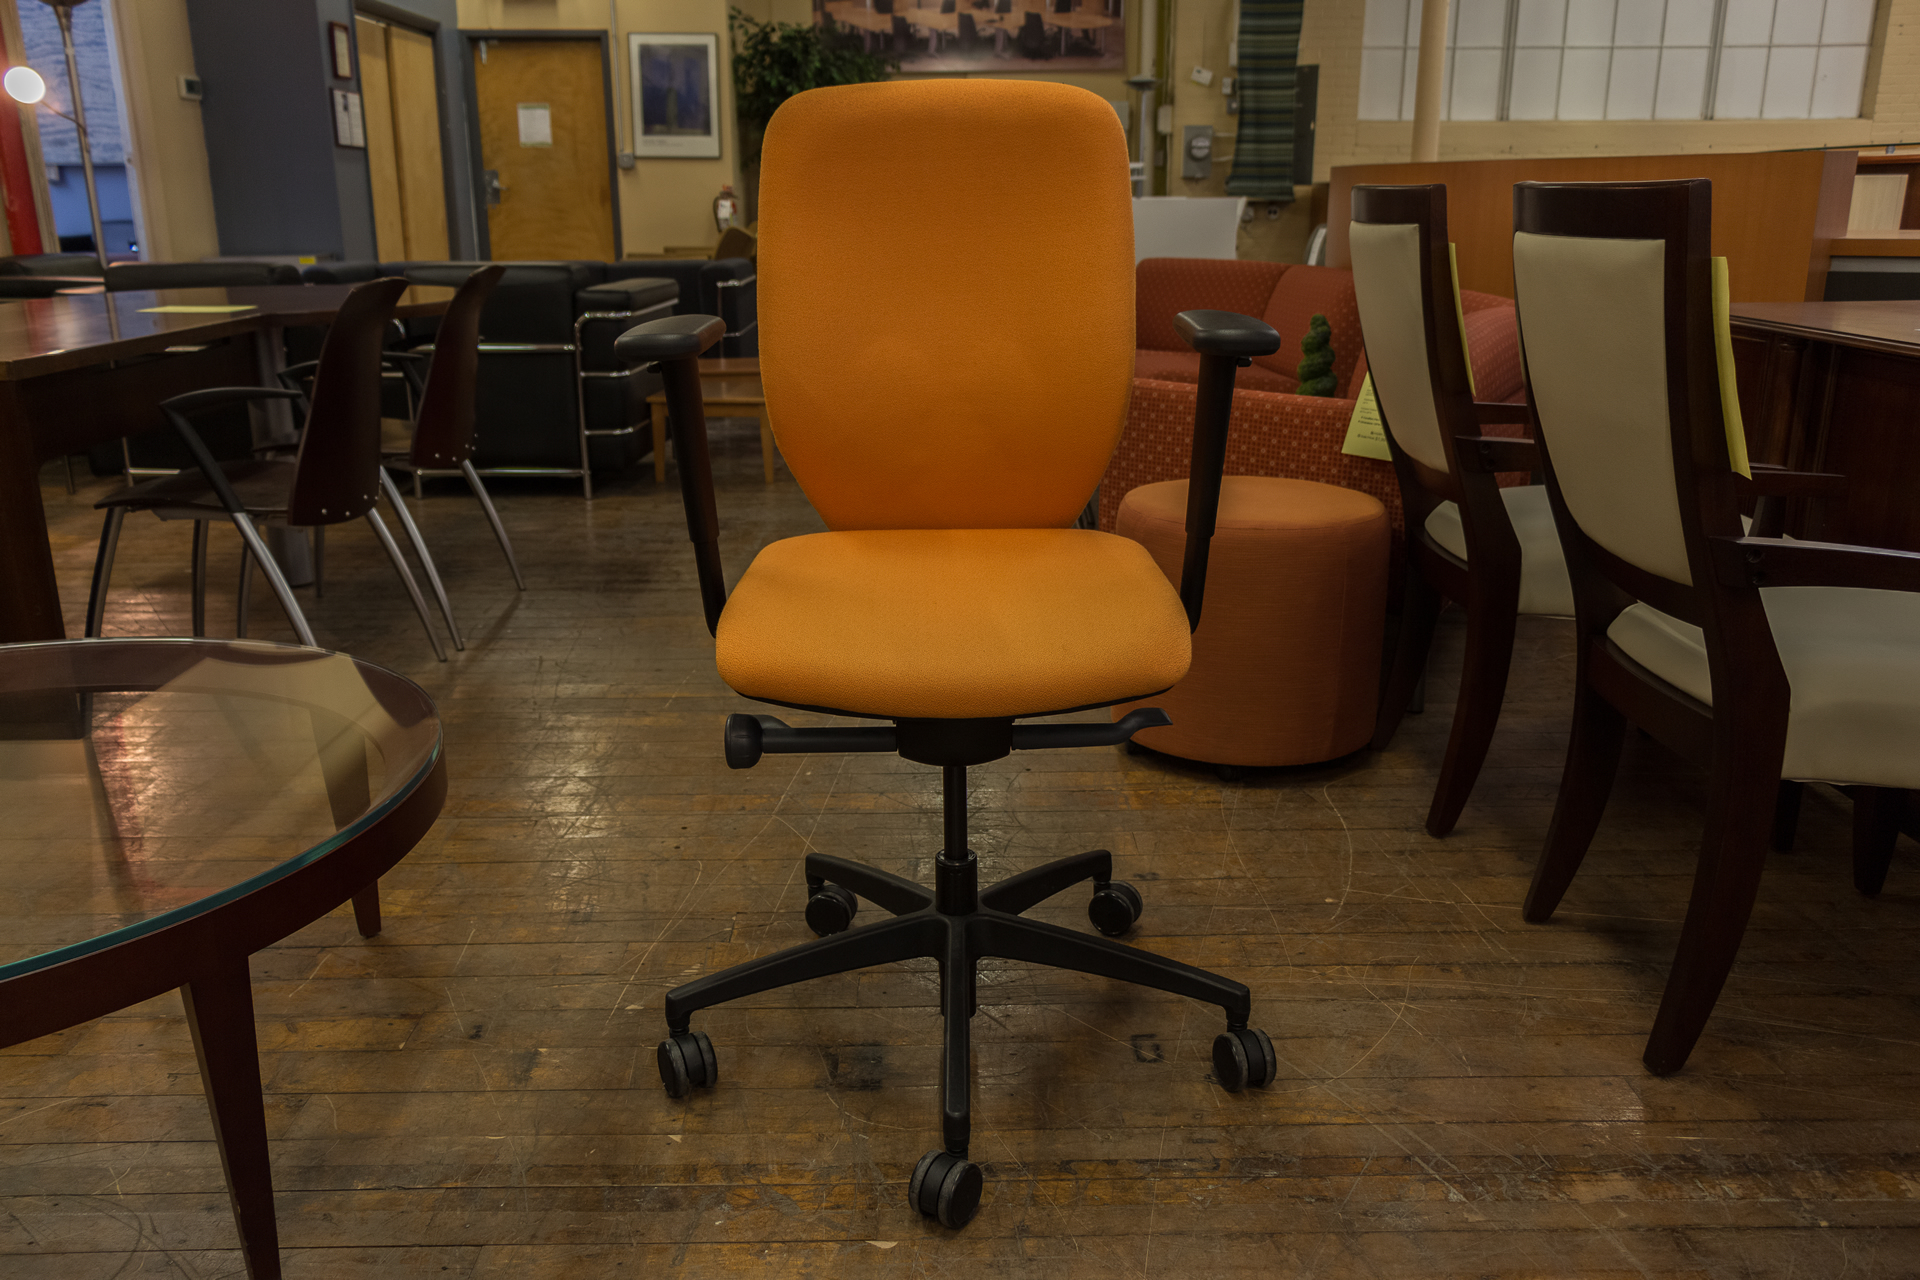 peartreeofficefurniture_peartreeofficefurniture_peartreeofficefurniture_boss-design-multi-function-task-chairs-in-red-blue-and-orange-2.jpg